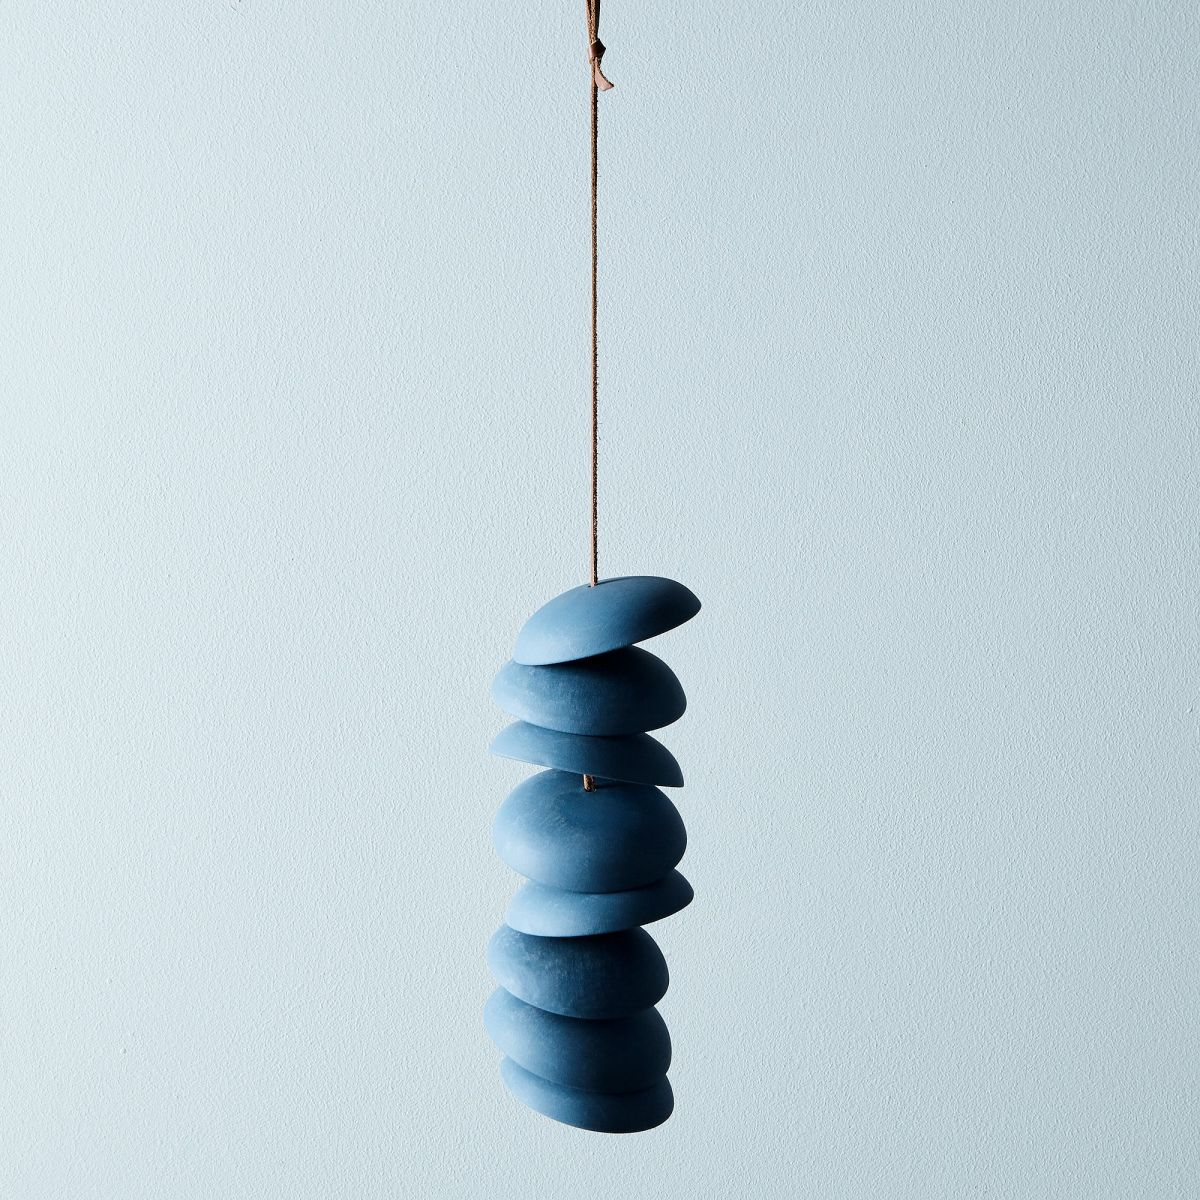 Blue Porcelain Wind Chimes - 8 Discs